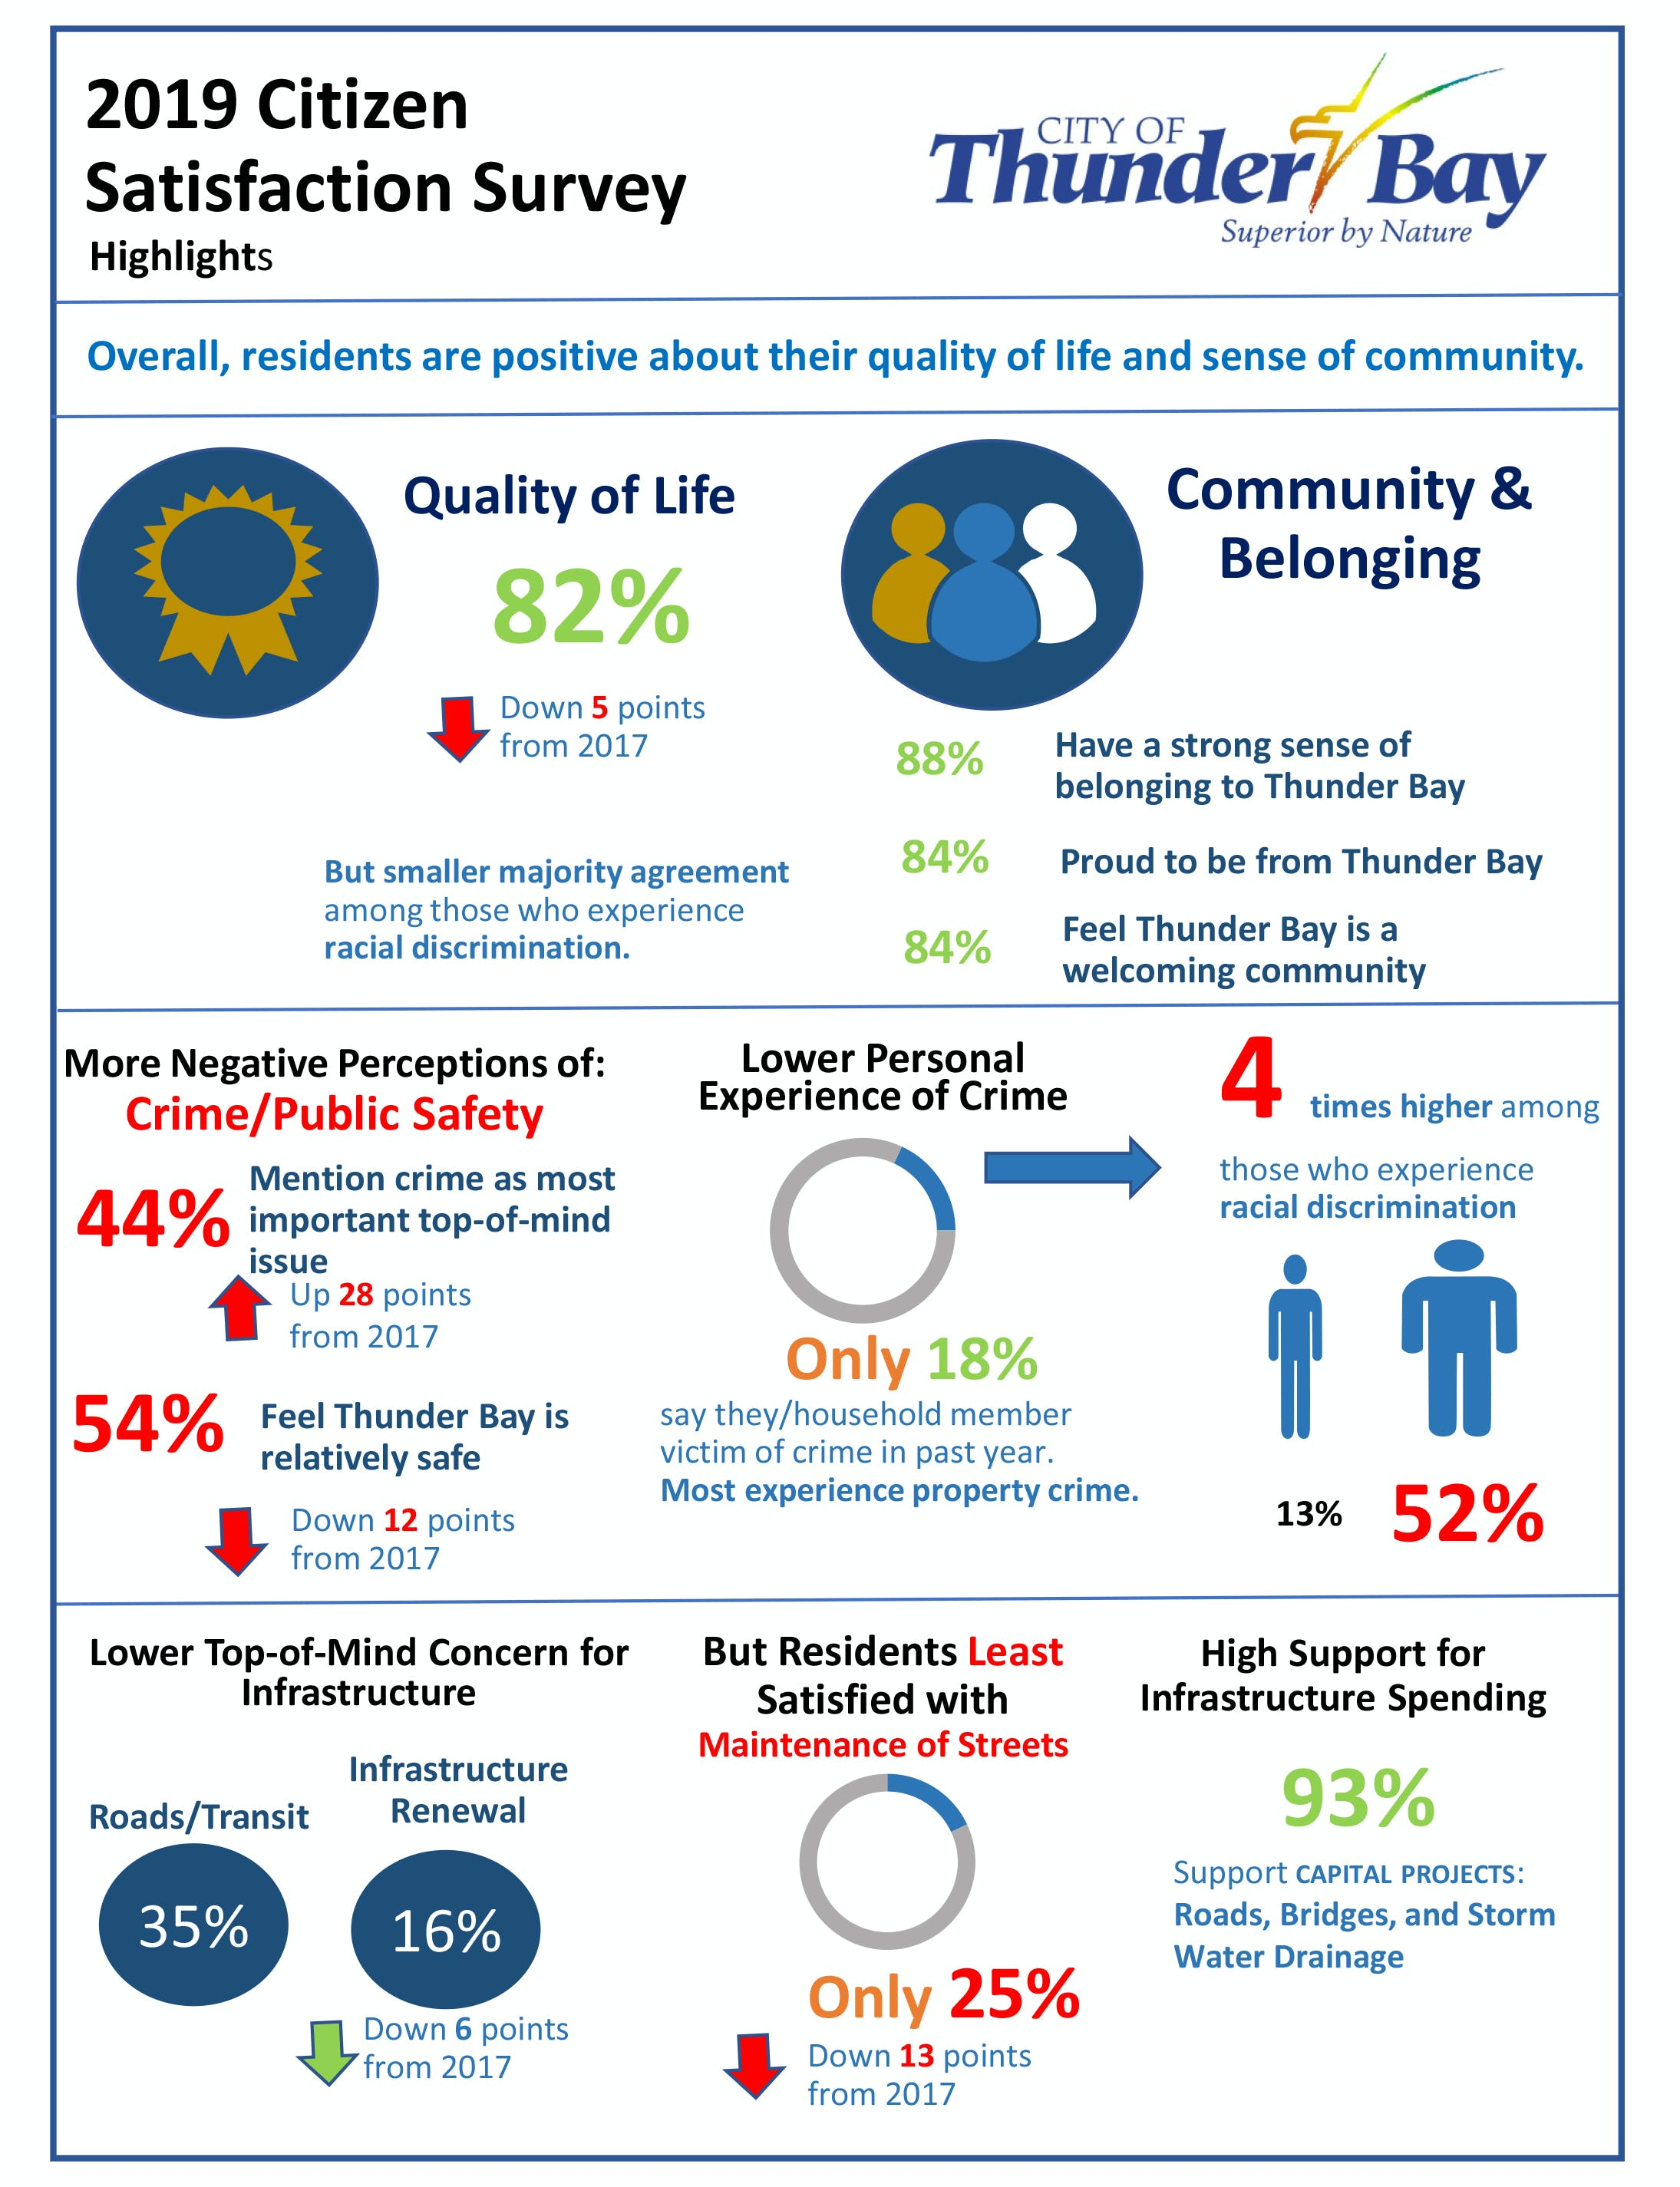 Citizen Satisfaction Survey Infographic May 2019